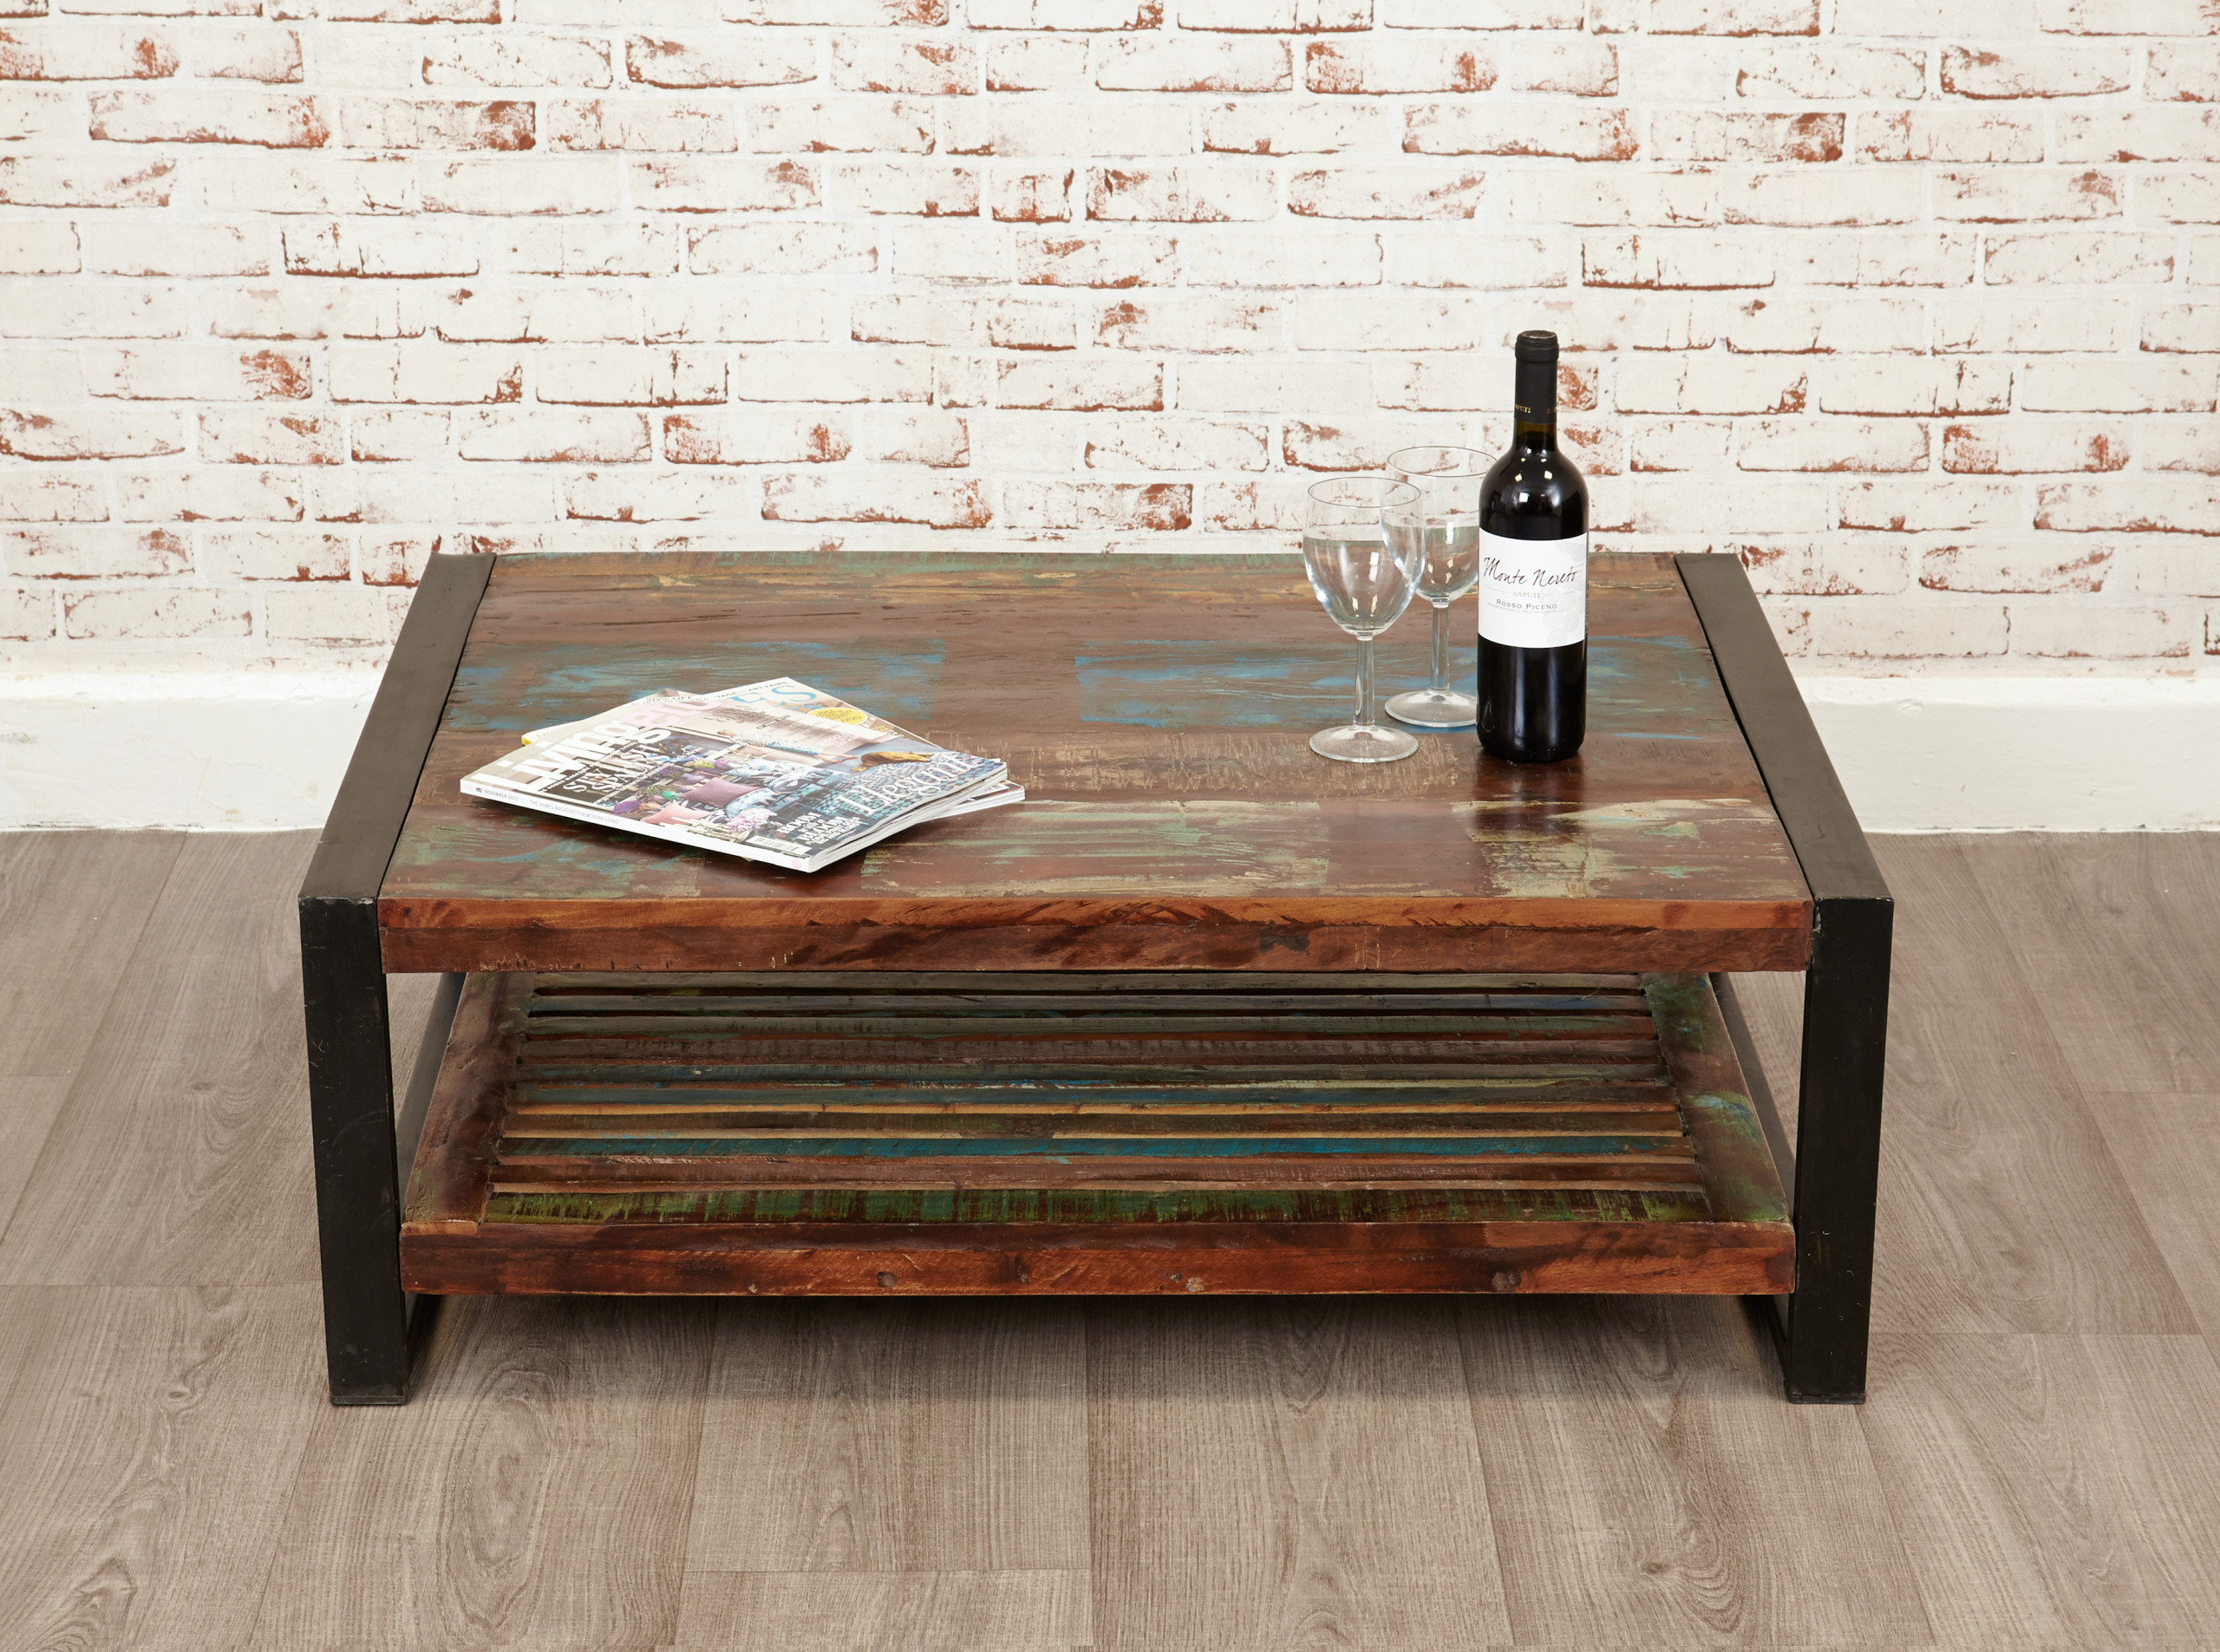 urban chic large coffee table with low-level shelf